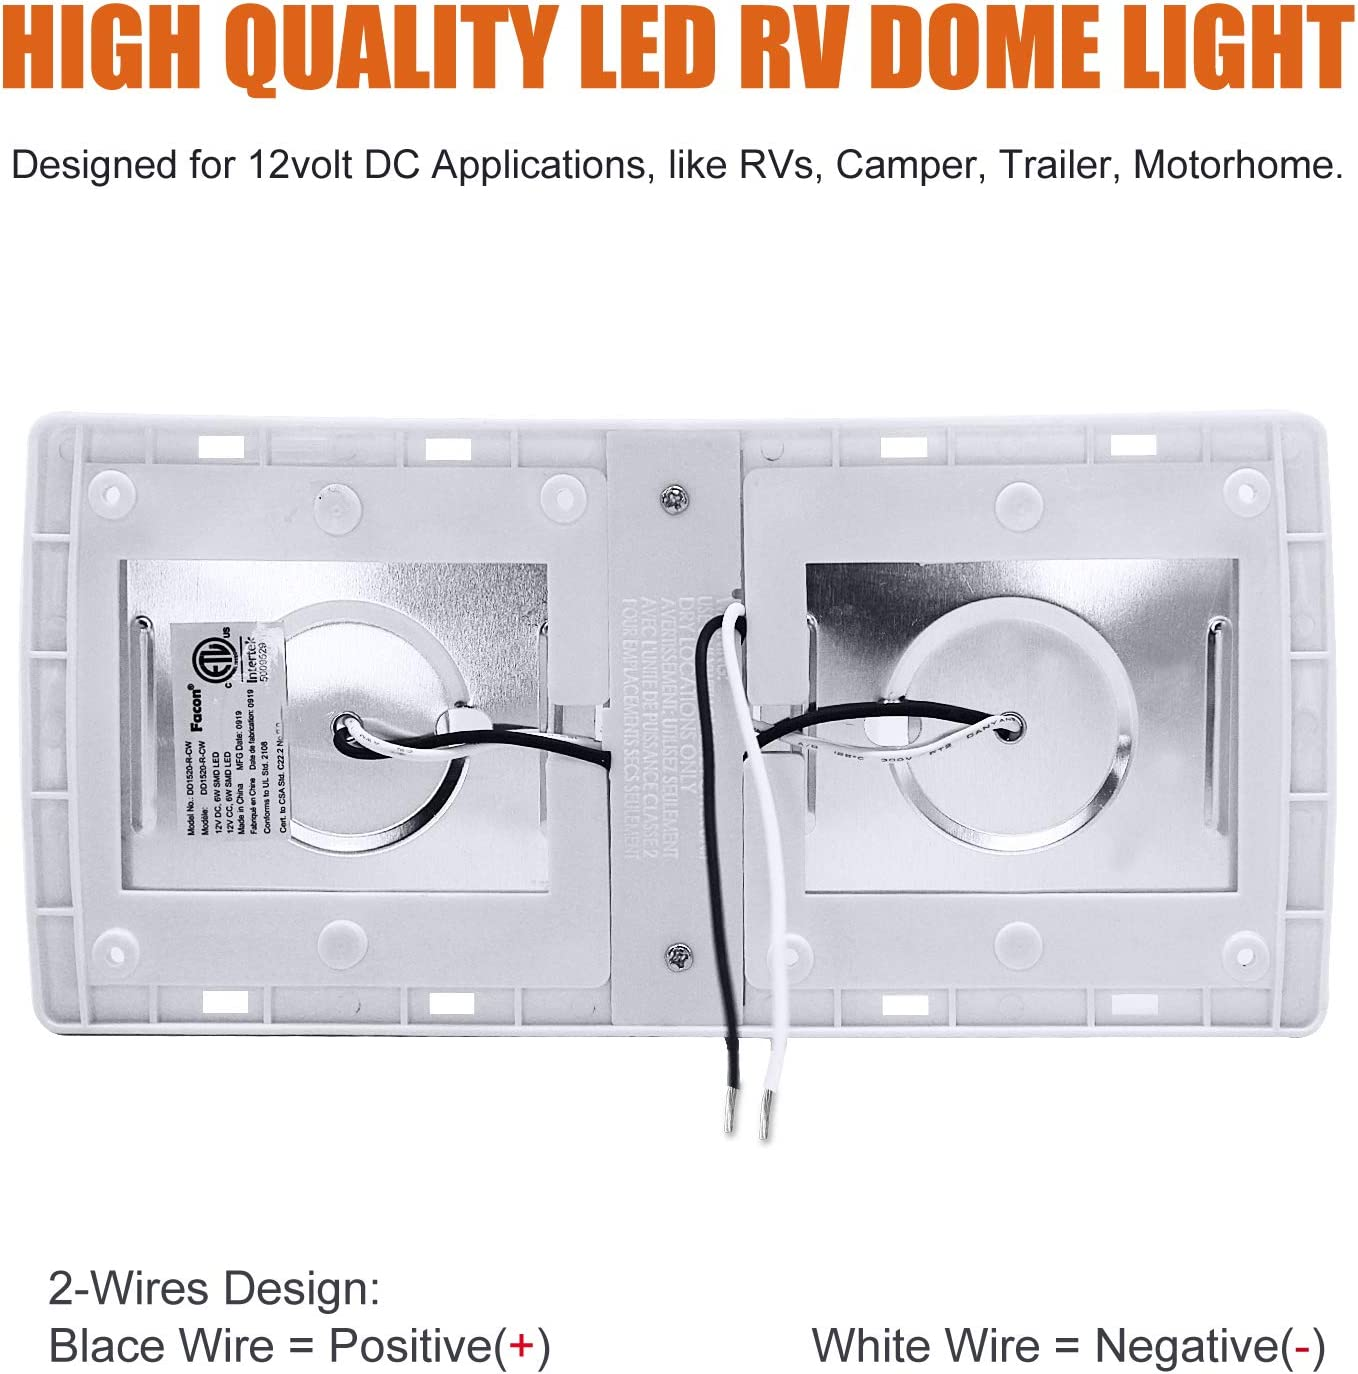 Facon LED 12Volts RV Pancake Light Double Ceiling Dome Light Under Cabinet Light with Switch 12V DC RV Interior Light for RV Motor-Homes Camper Caravan Trailer Boat